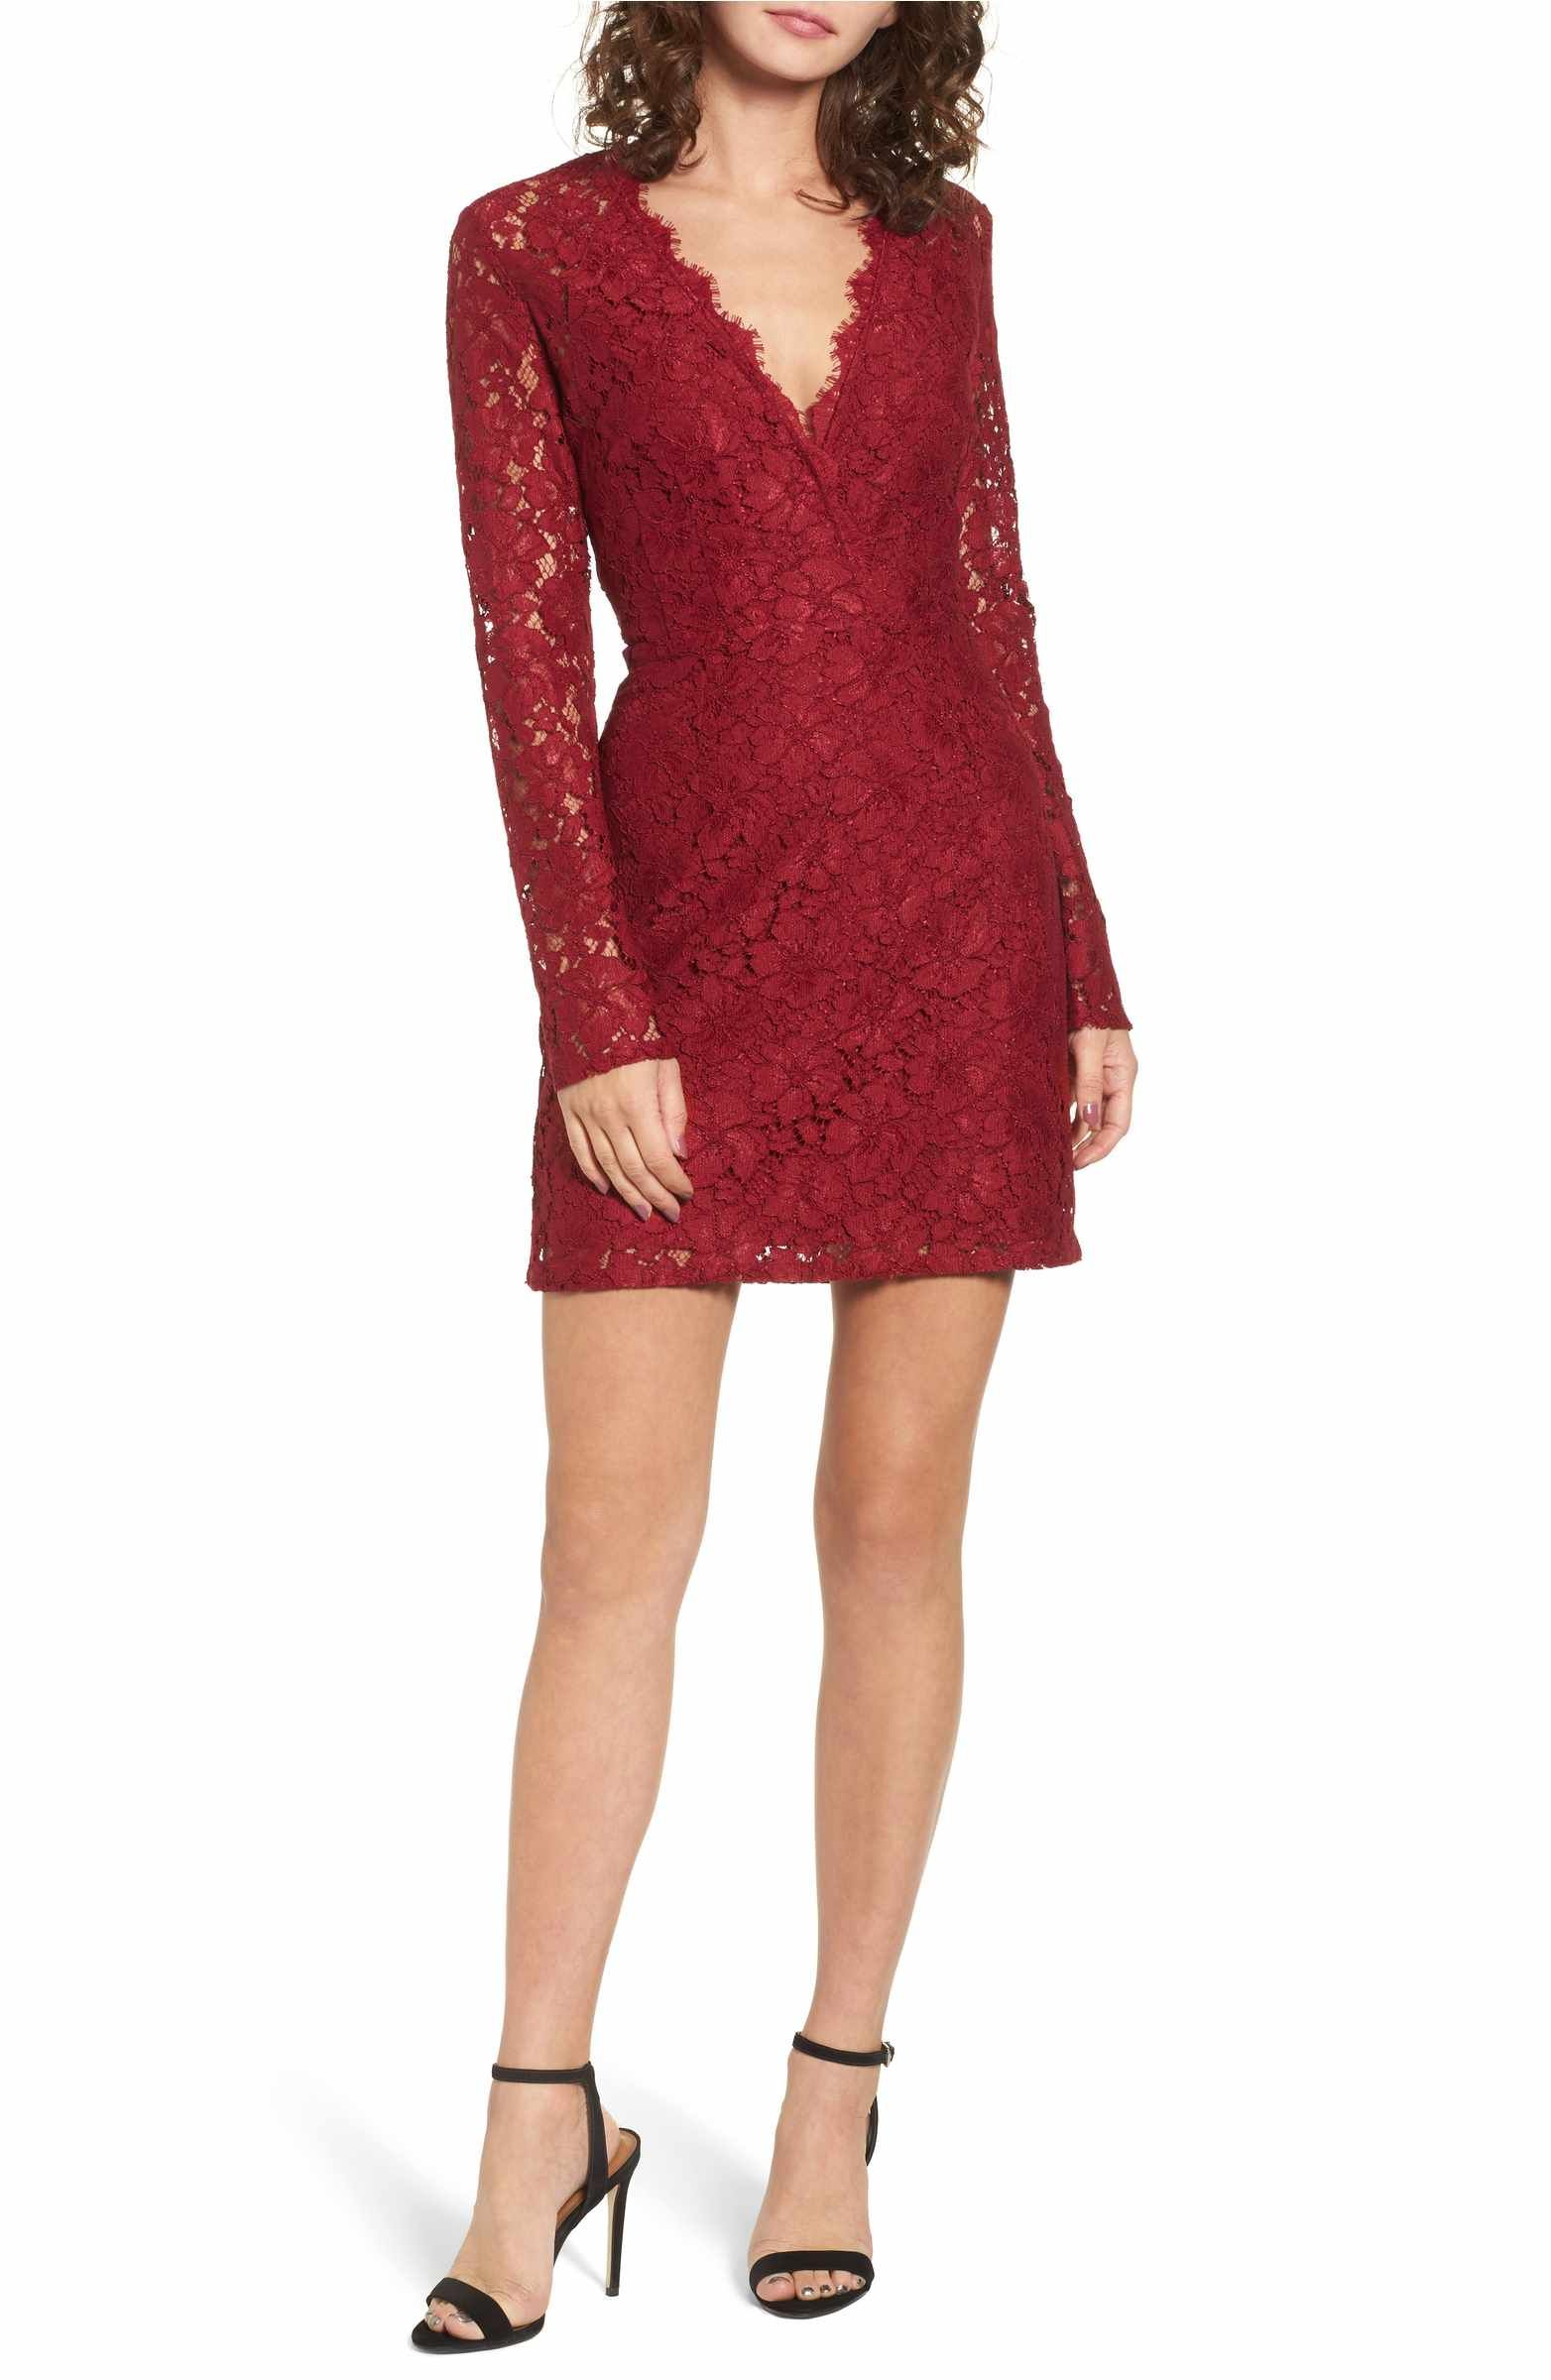 Wayf Say It Out Loud Lace Dress Nordstrom Red Lace Cocktail Dress Cocktail Dress Lace Lace Dress [ 2400 x 1564 Pixel ]